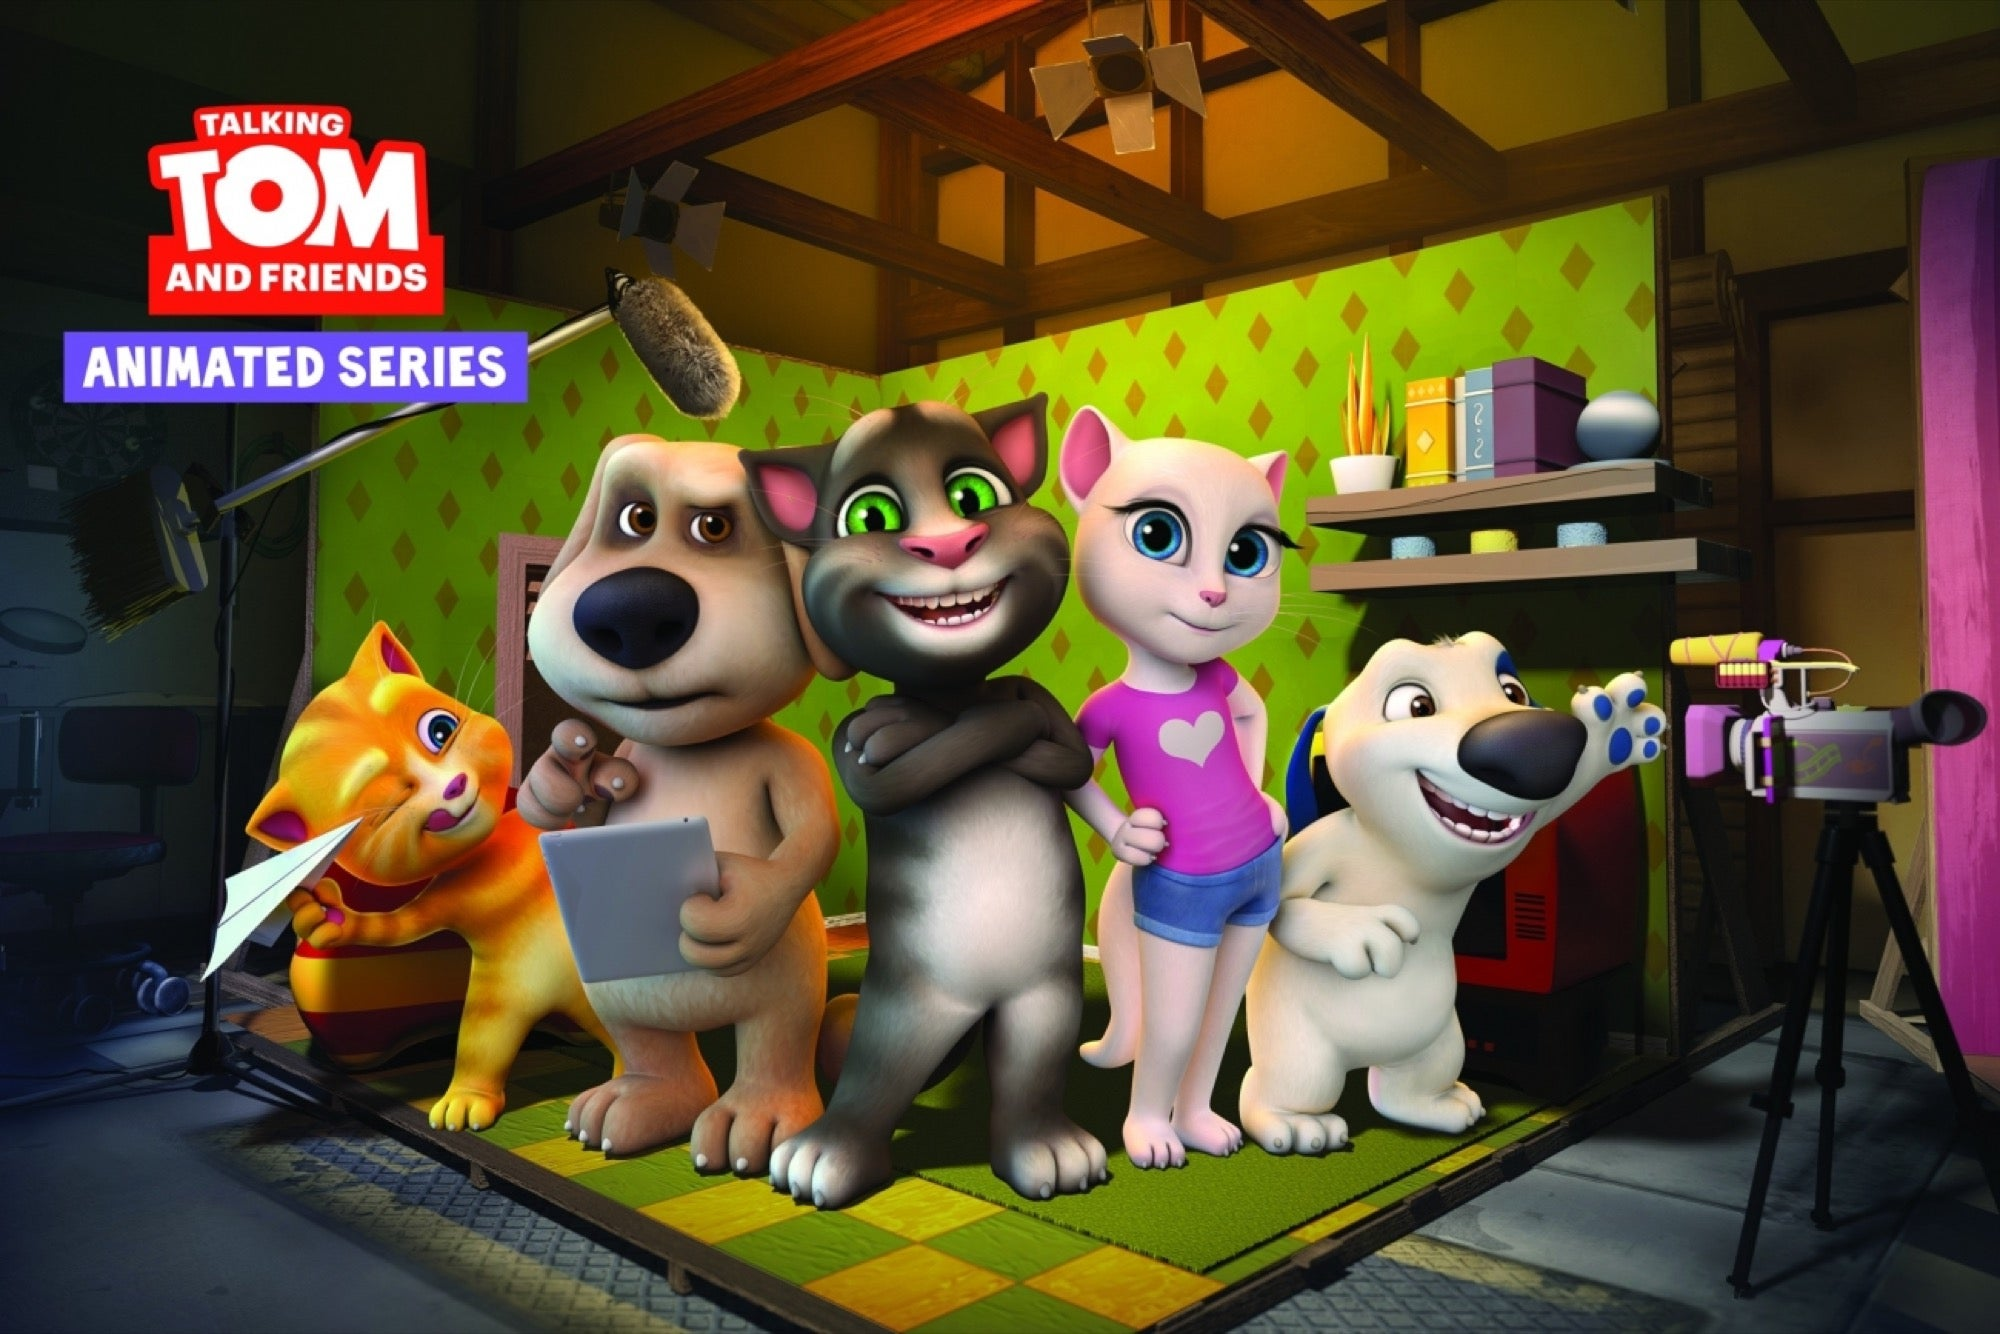 With Billions Of App Downloads And Youtube Views Talking Tom Spawned An Entertainment Empire